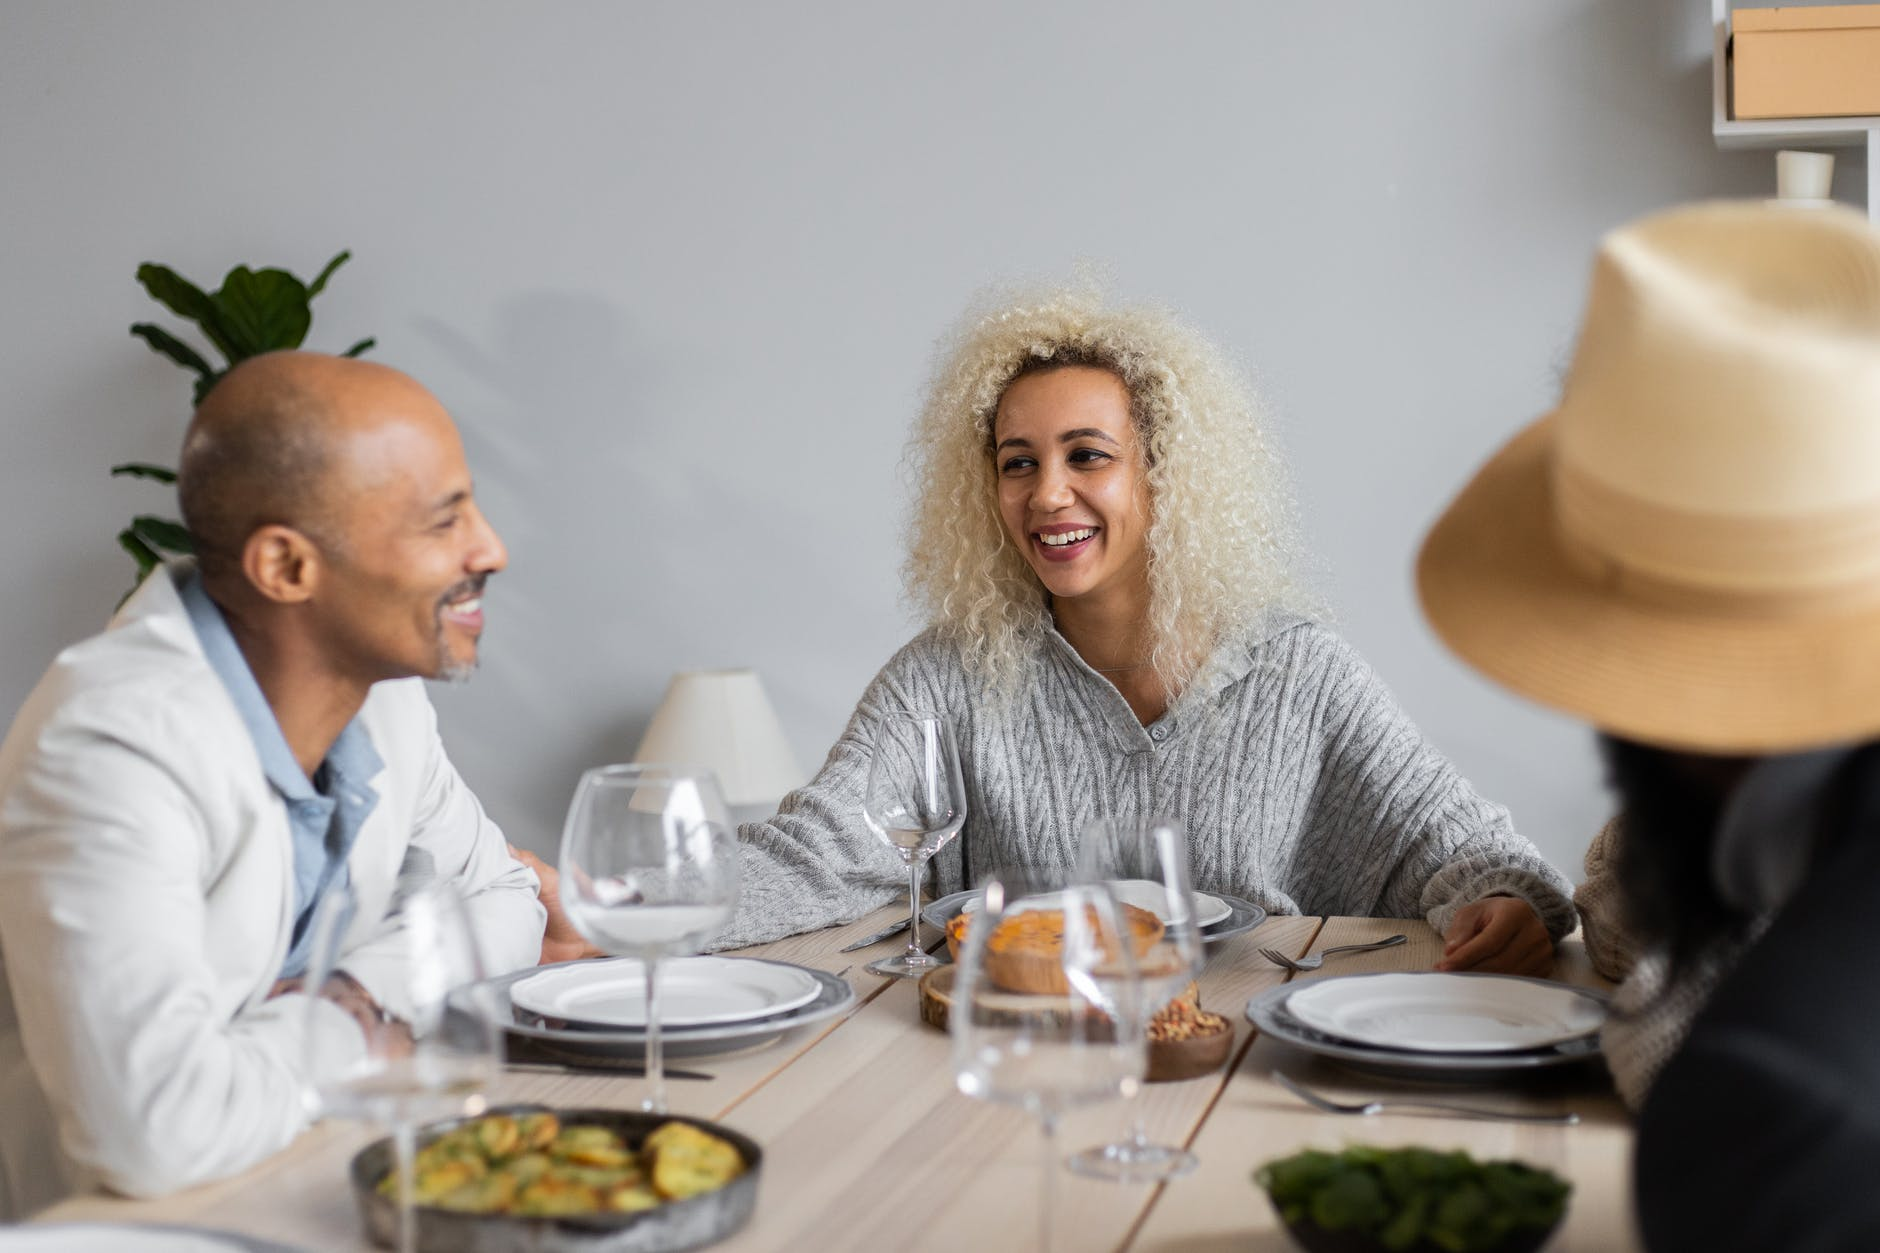 smiling people at table with food